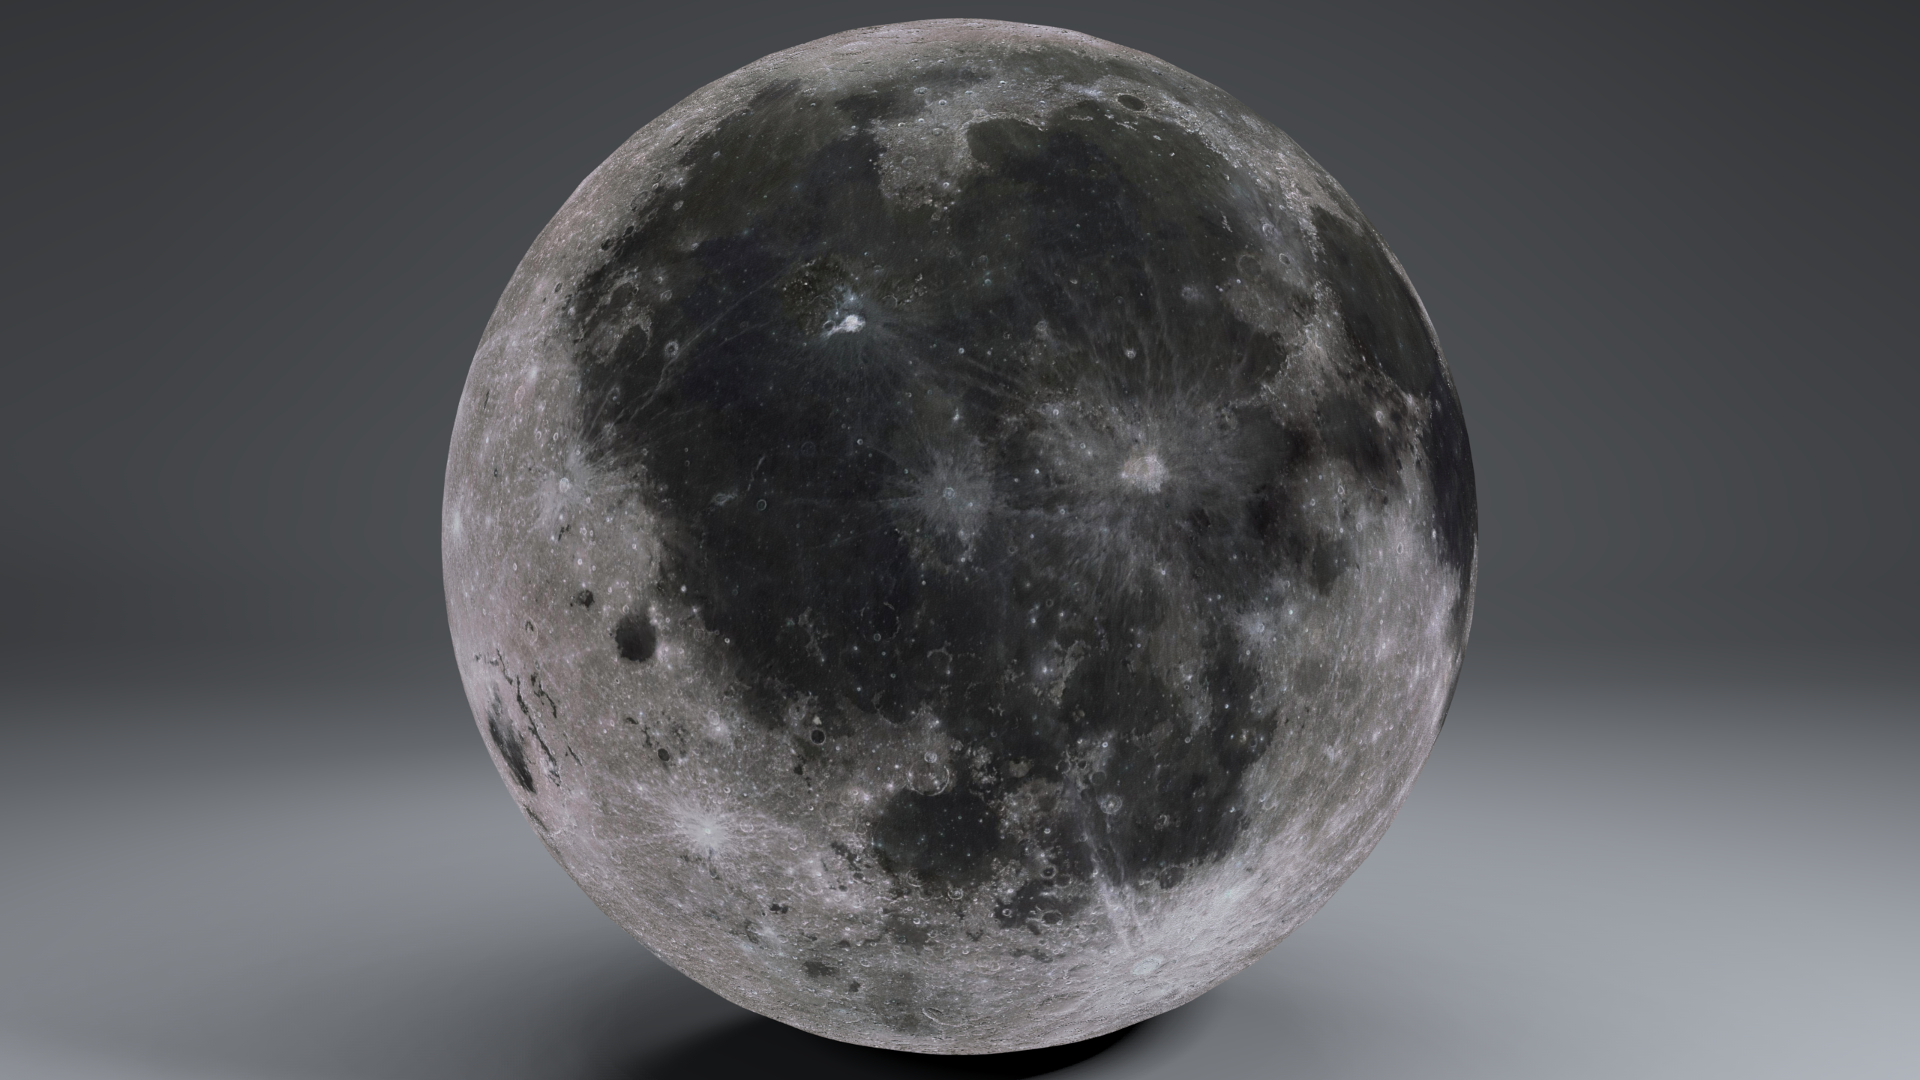 moonglobe 8k 3d model 3ds fbx blend dae obj 221865